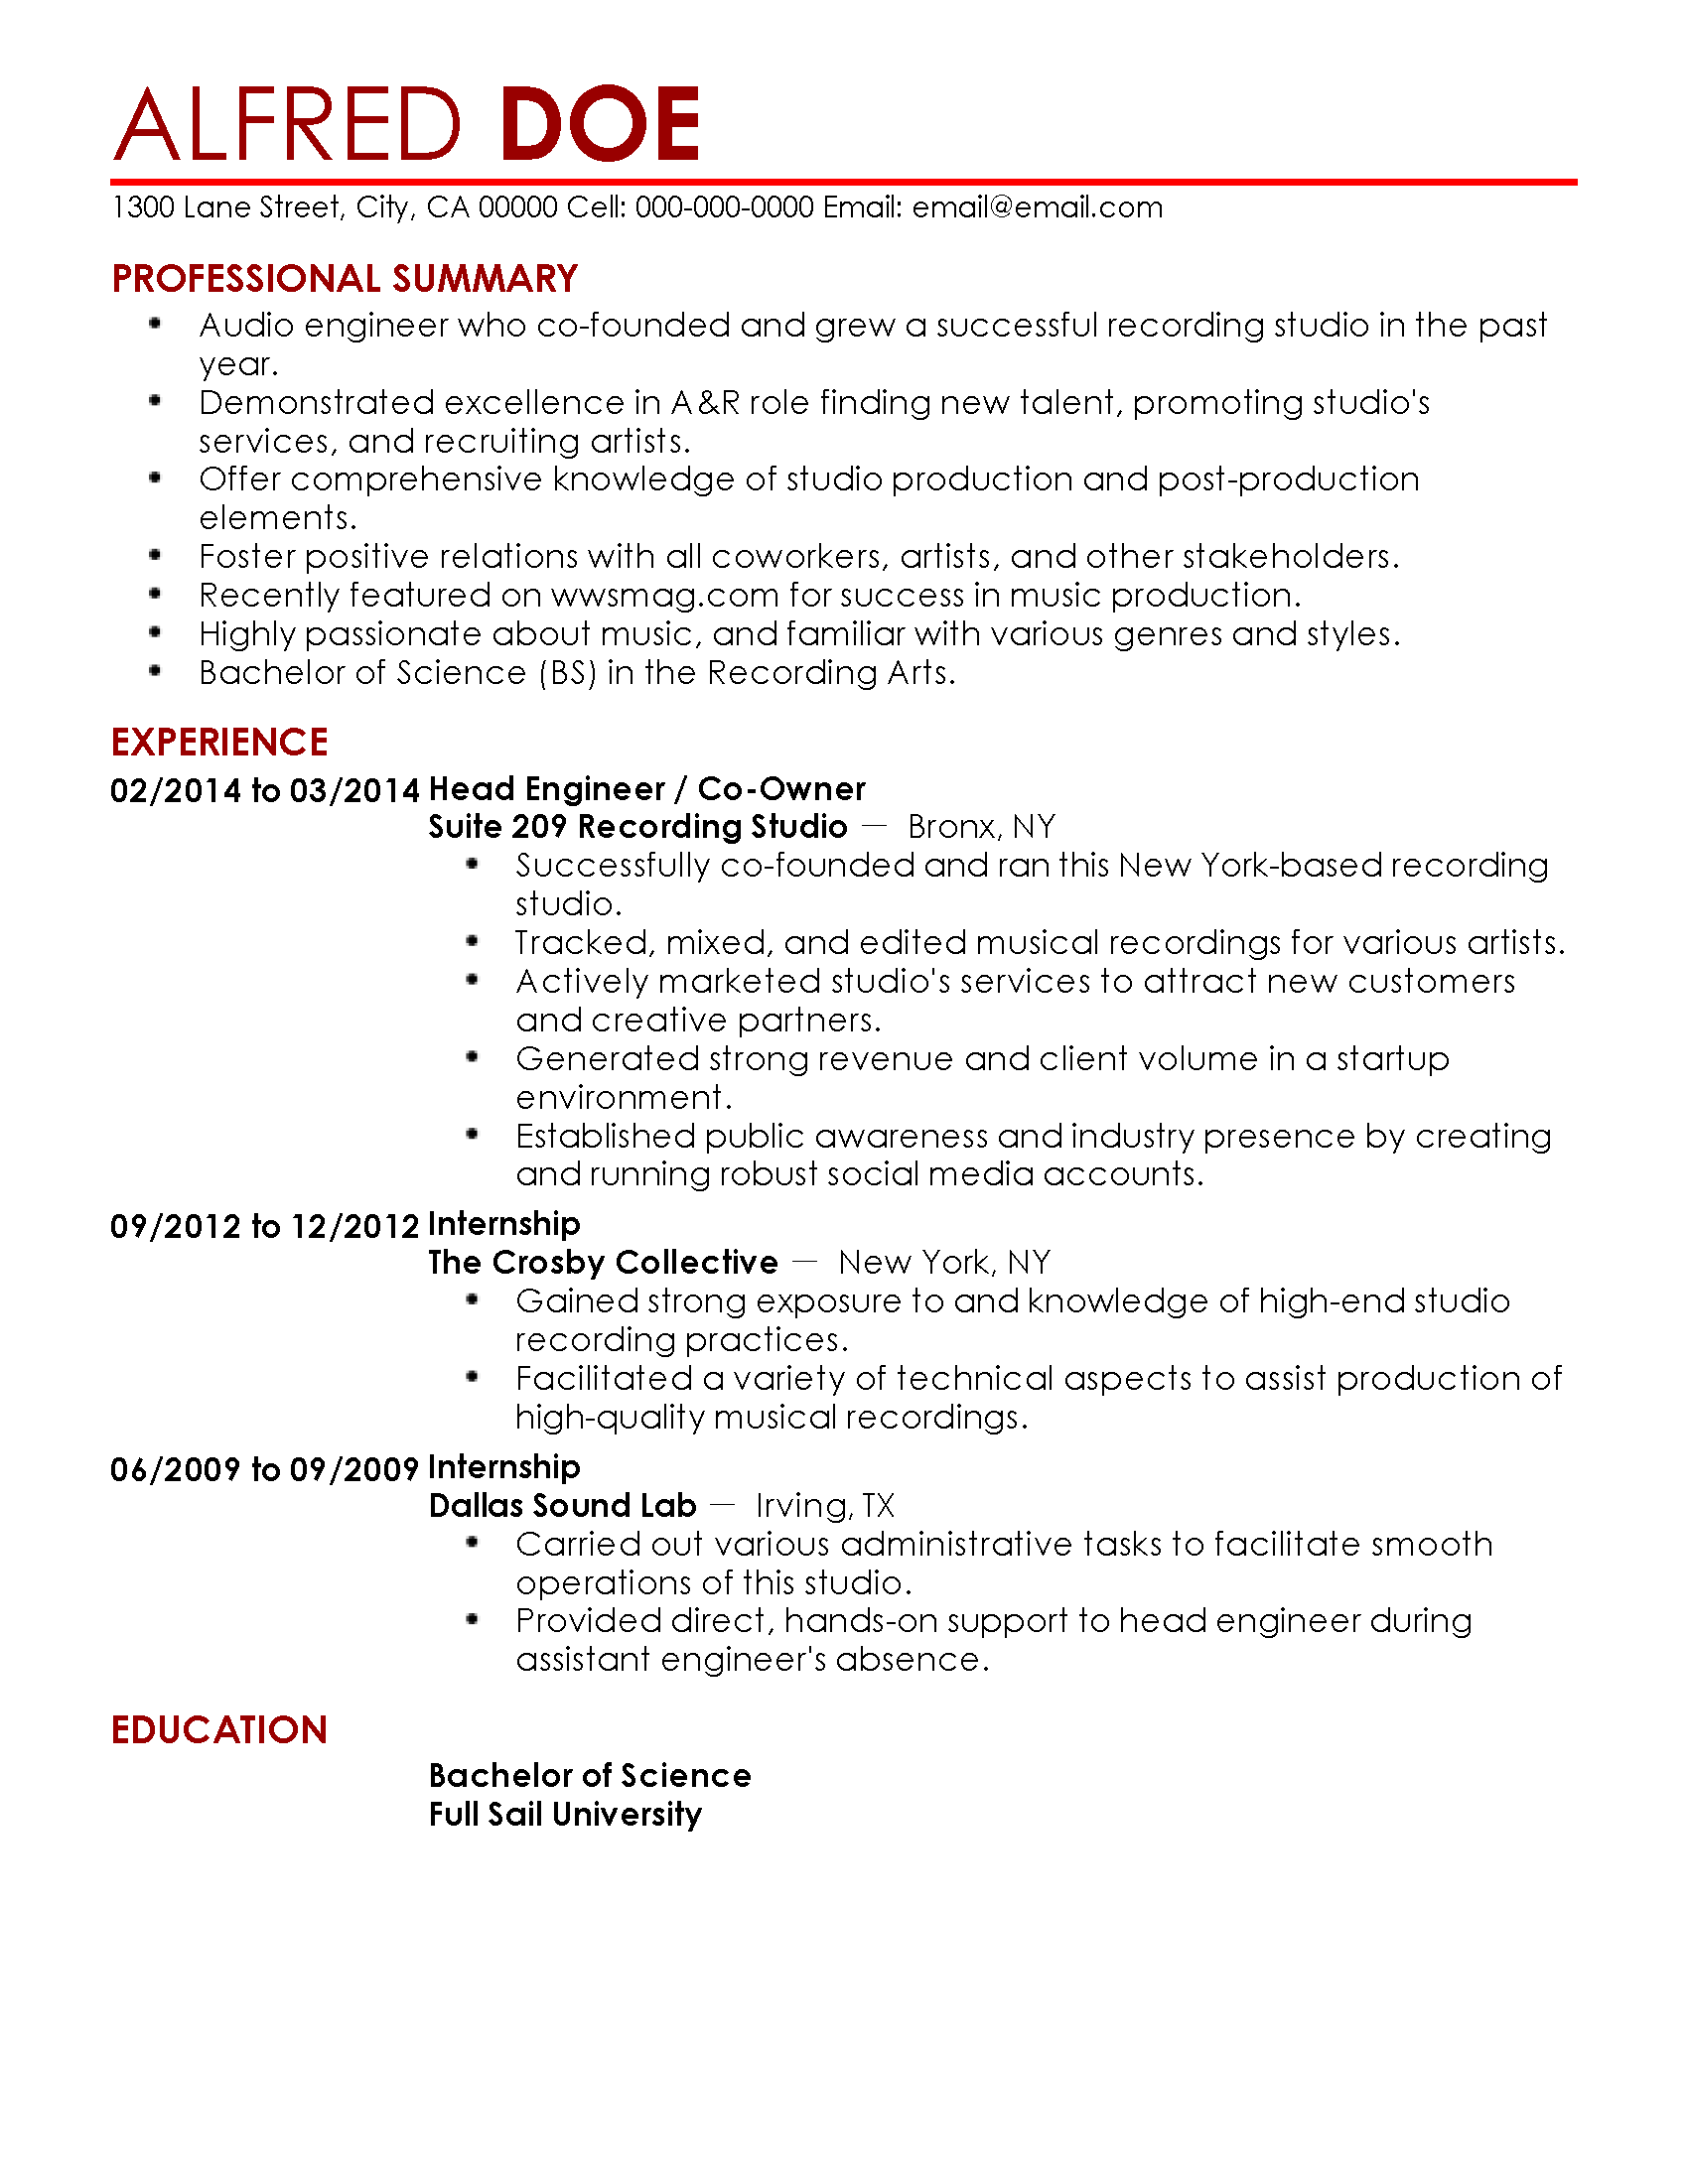 Cprw Resume Professional Resume For Adrian Grossman My Perfect Resume